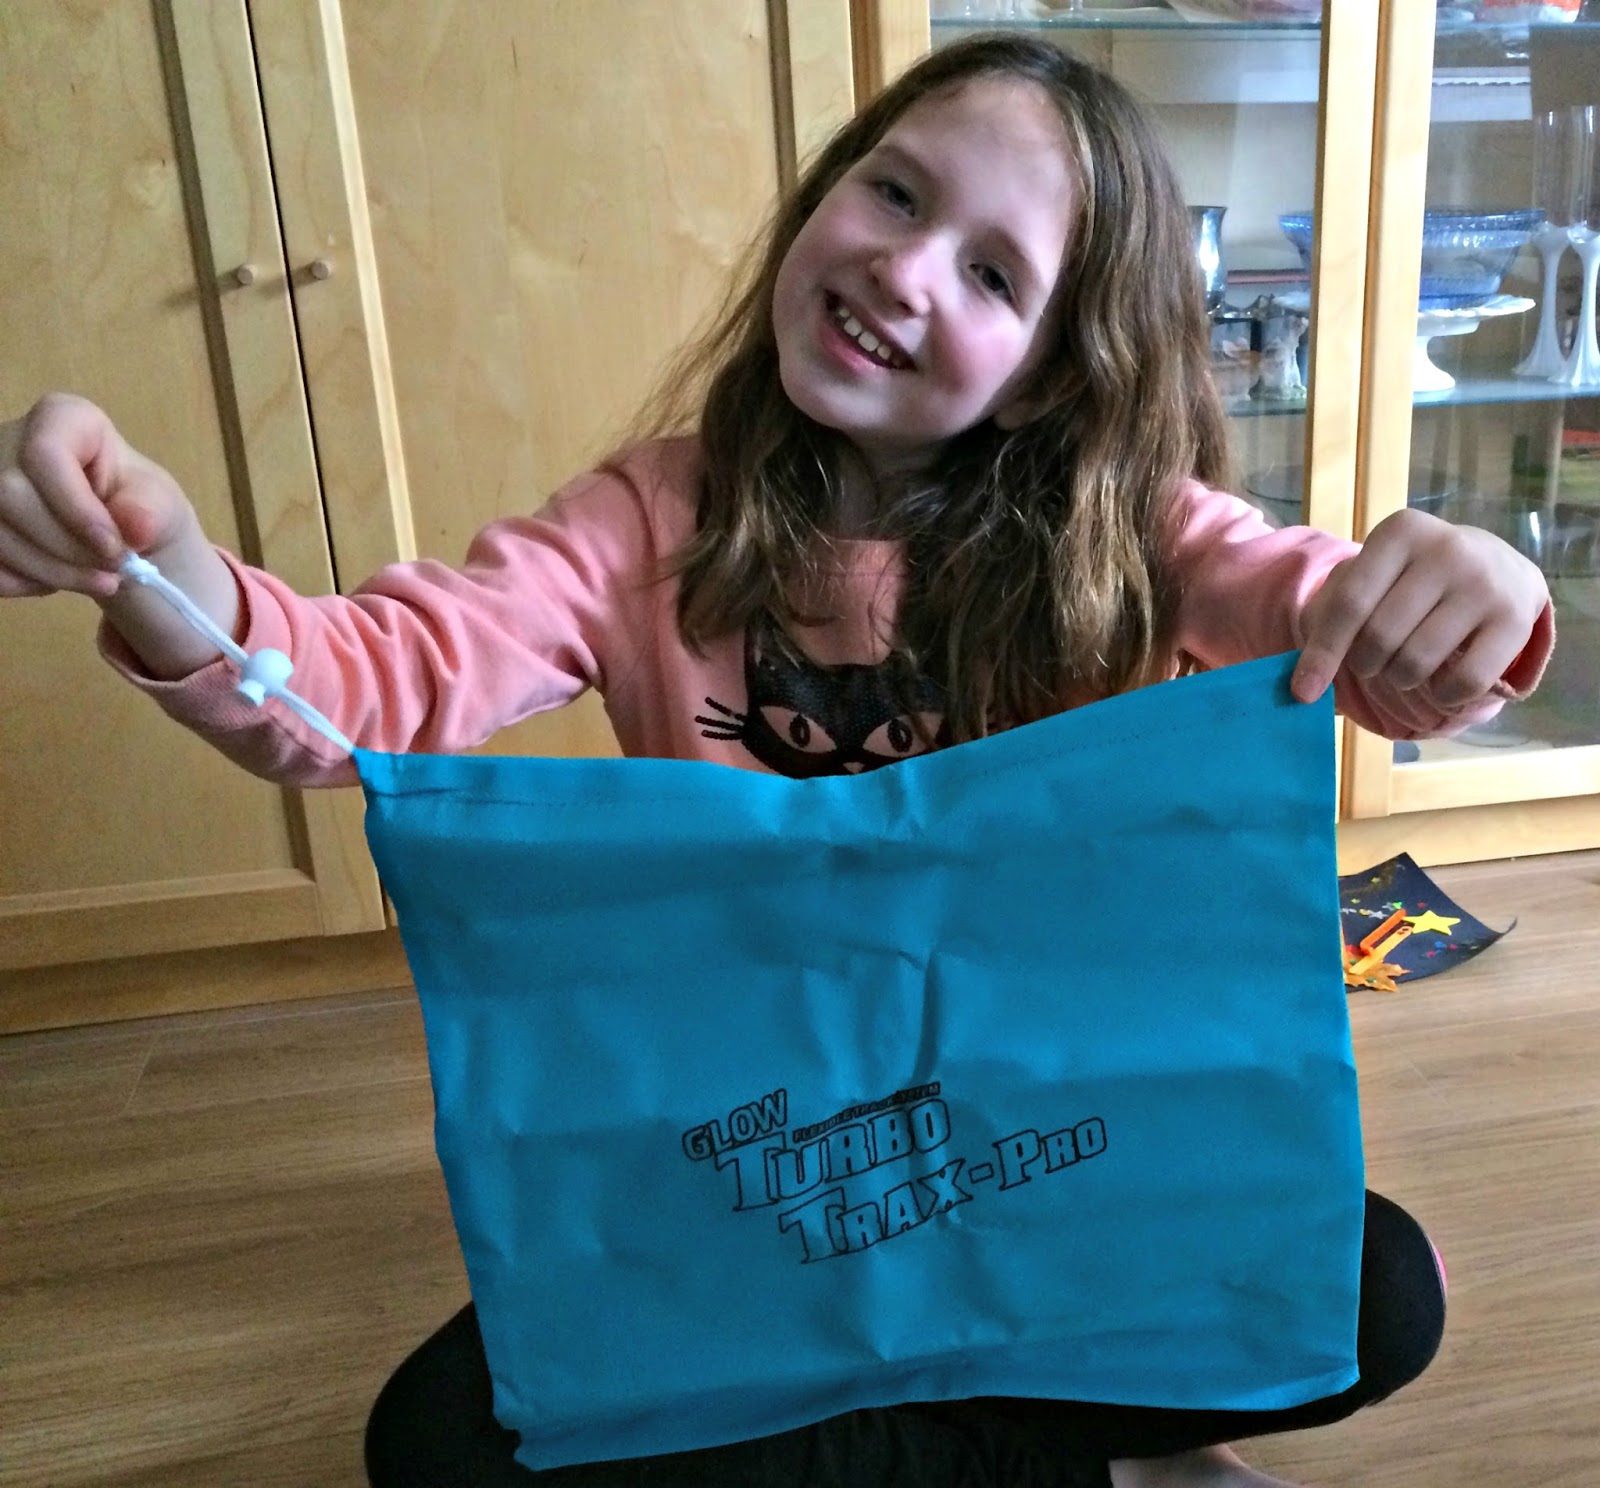 Caitlin holding Turbo Trax-Pro drawstring bag for easy storage